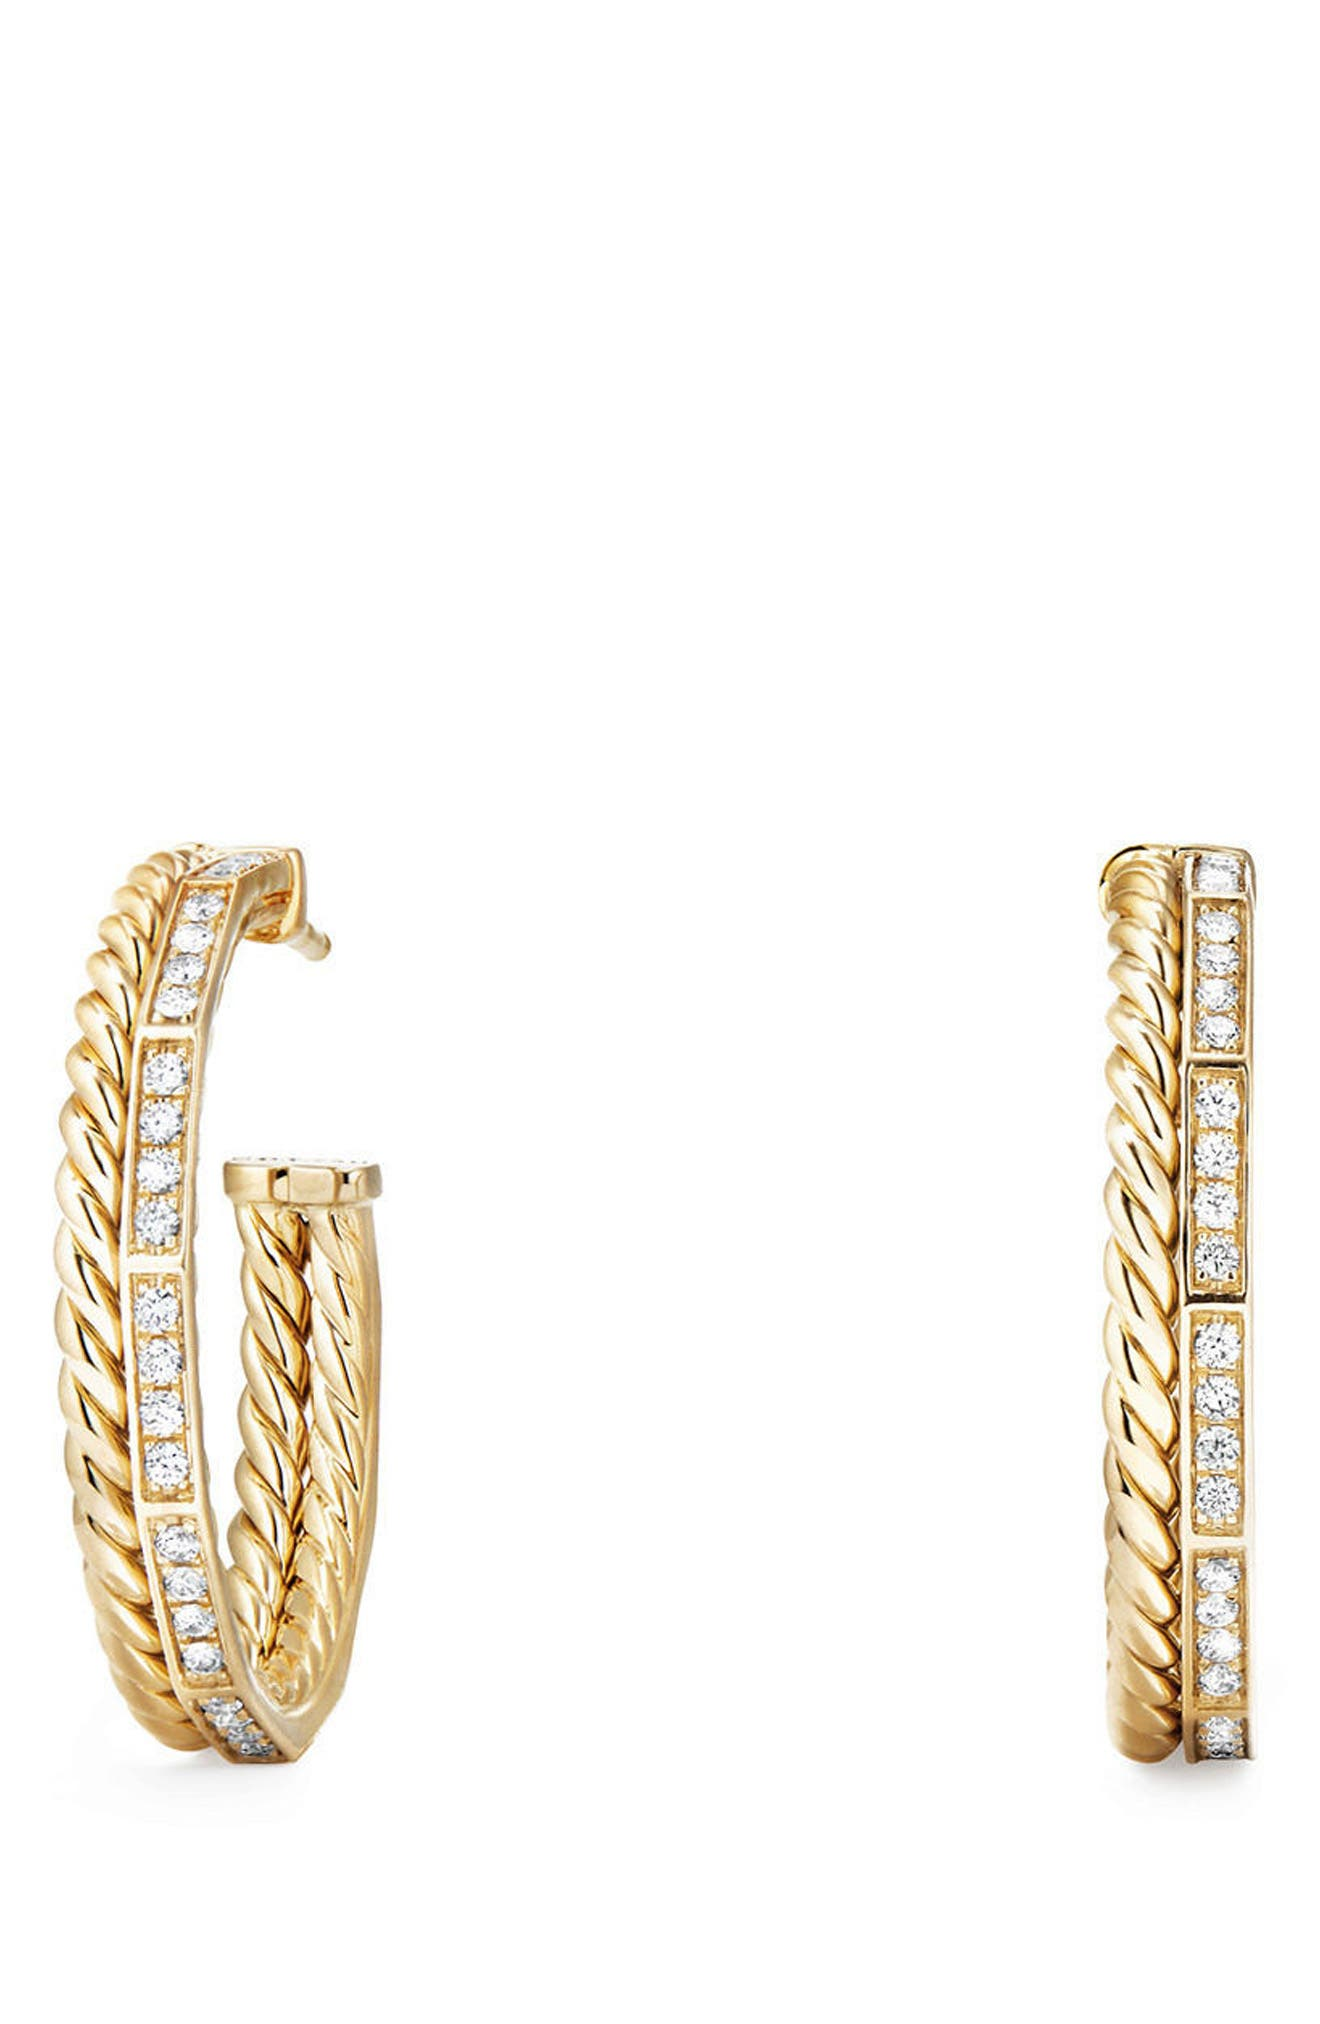 Stax Hoop Earrings with Diamonds in 18k Gold,                         Main,                         color, YELLOW GOLD